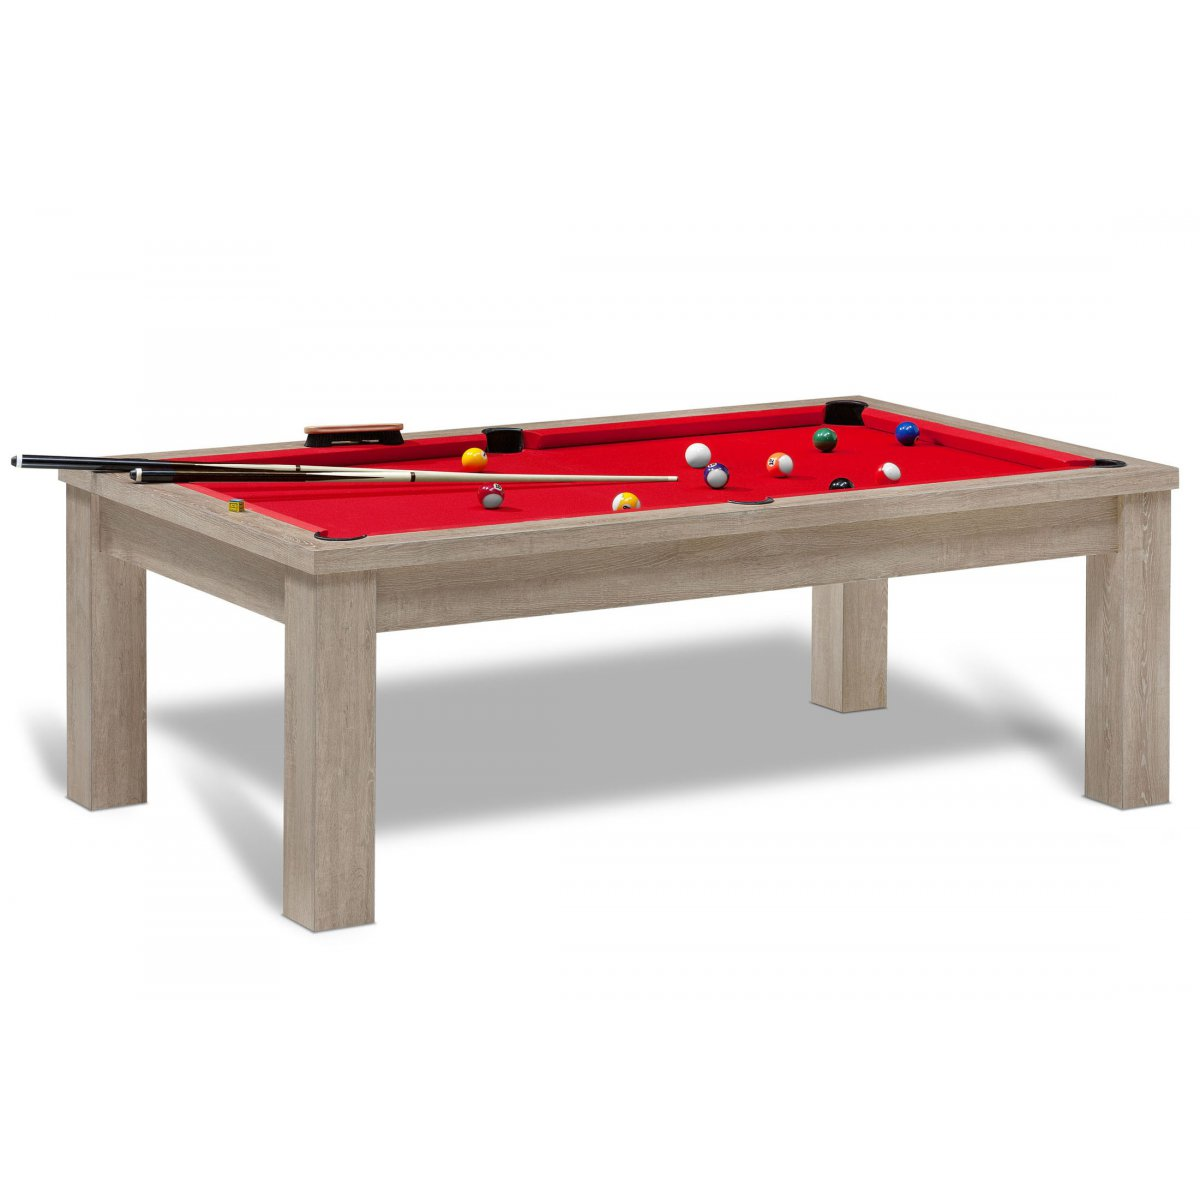 Billard am ricain billard table personnalisable jeux us for Table de salle a manger et billard